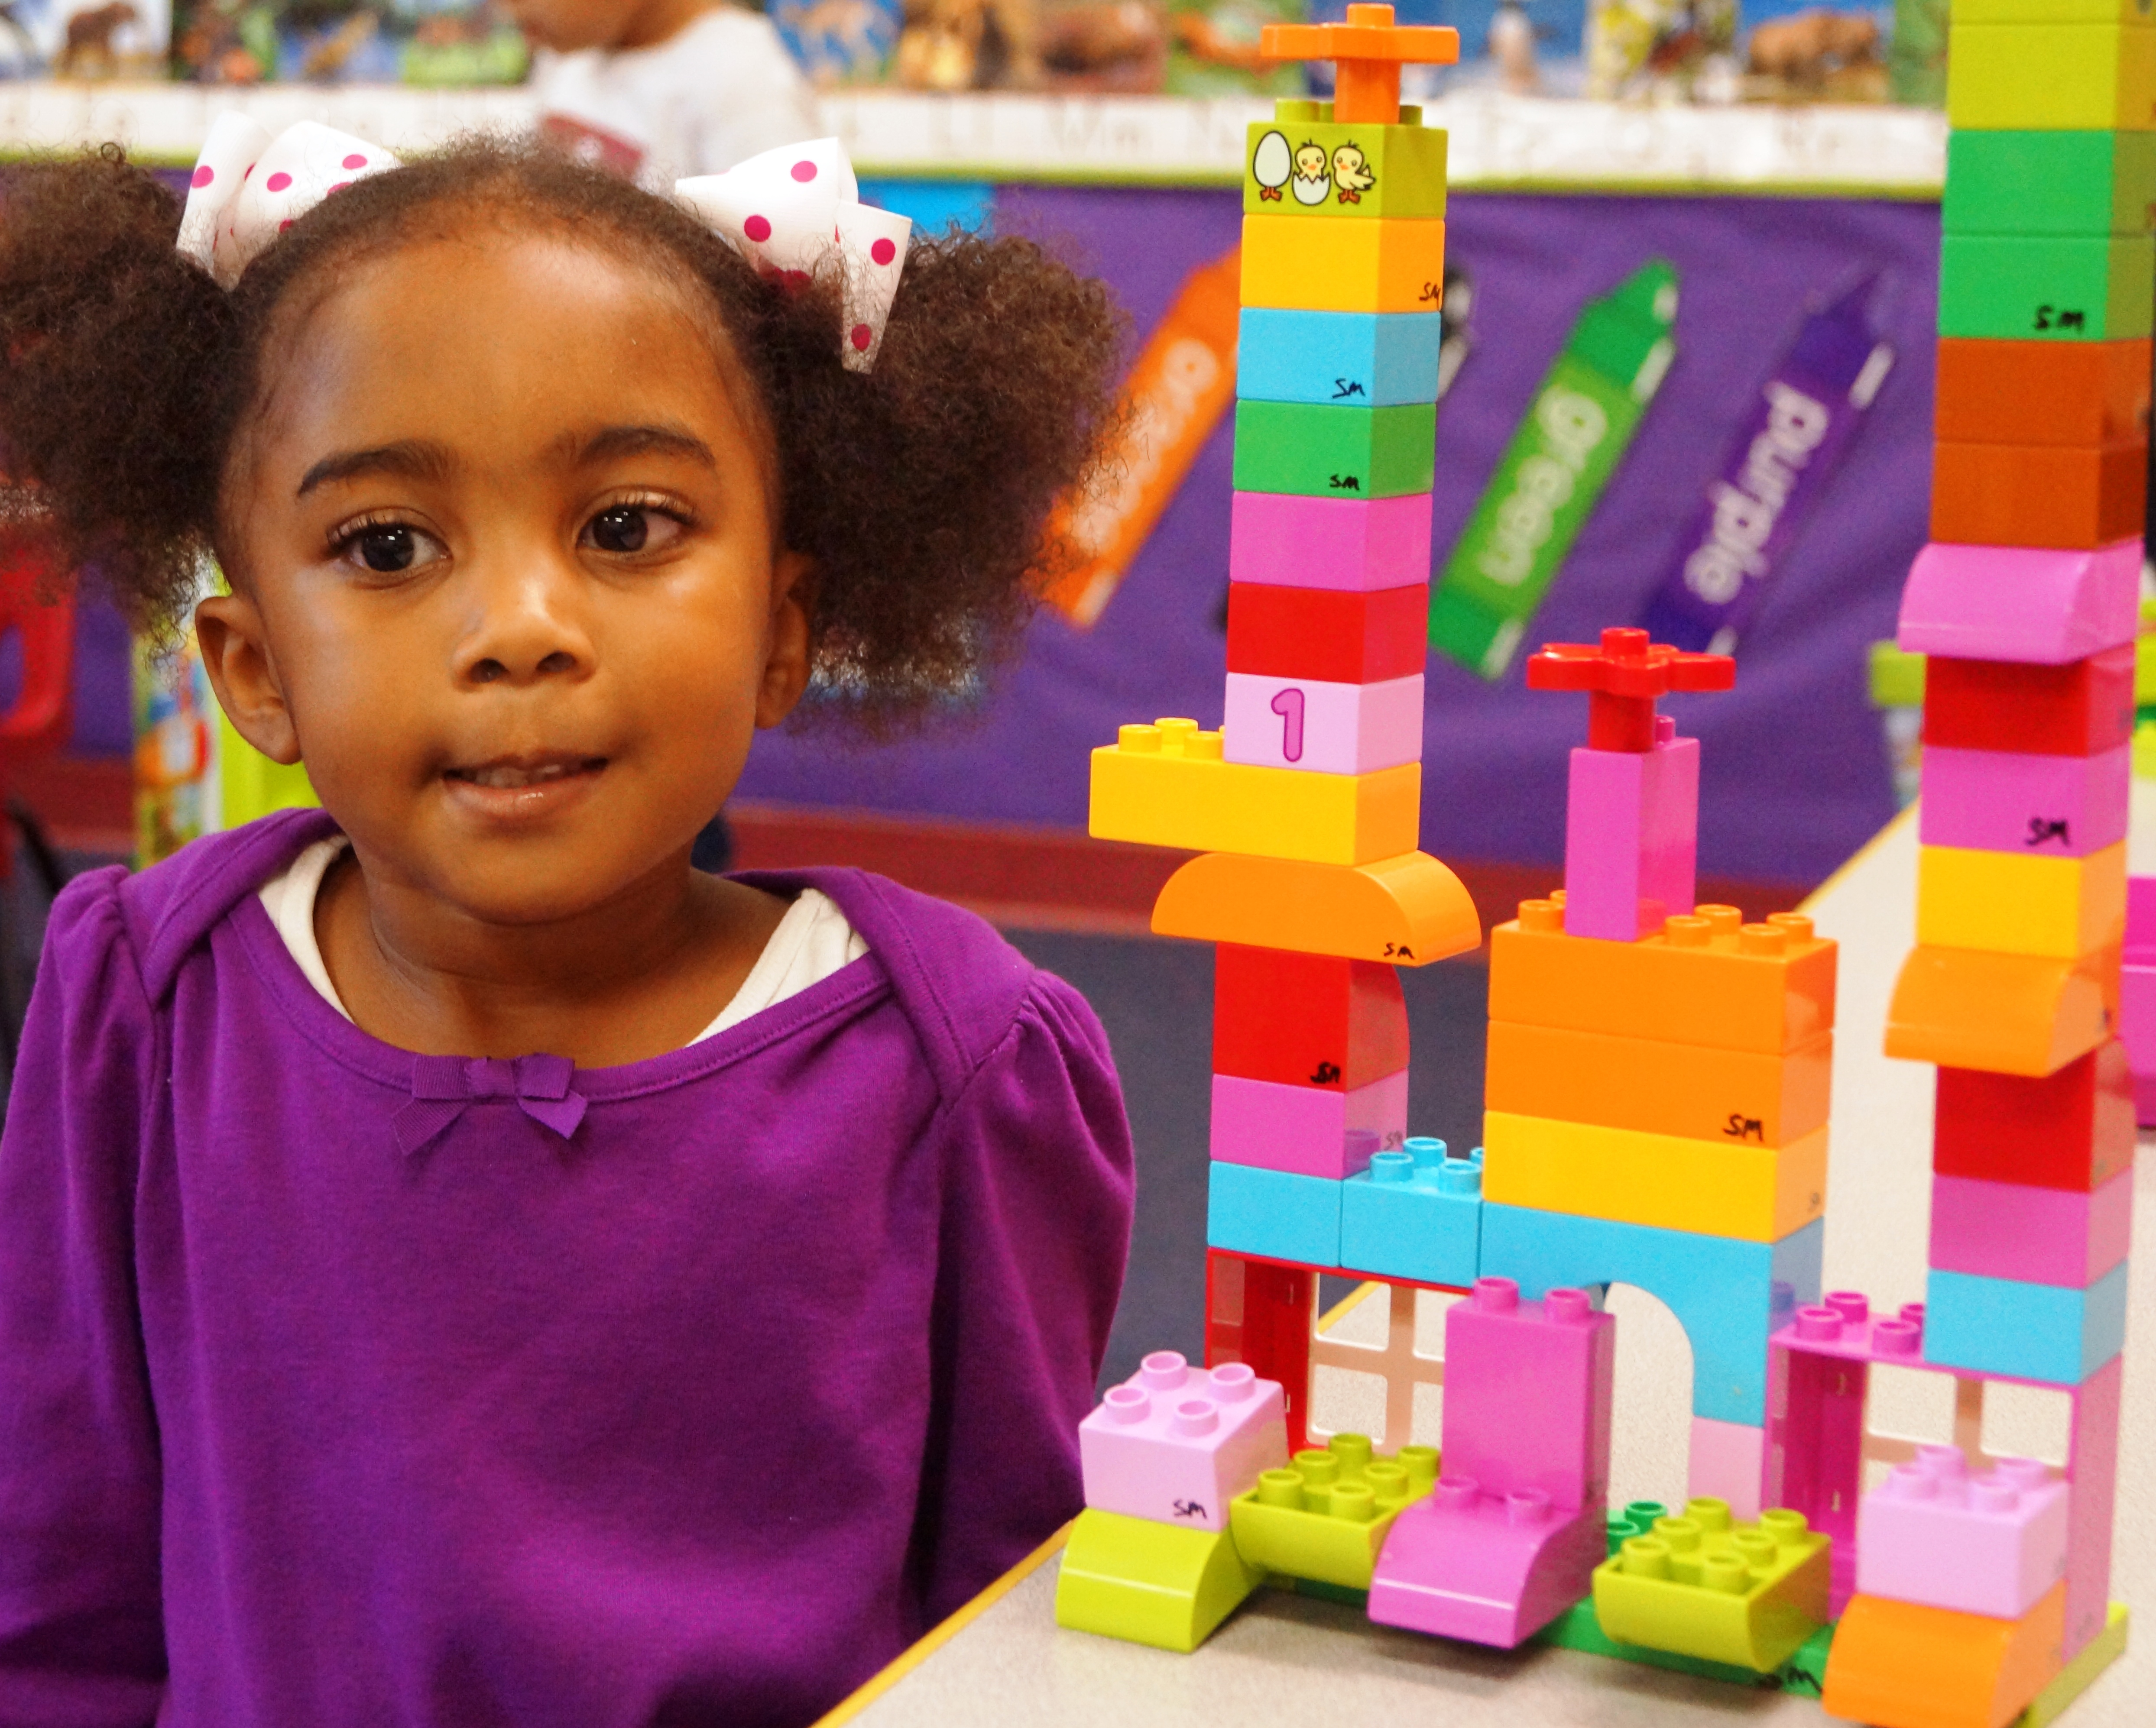 Lego Education for constructing castles!